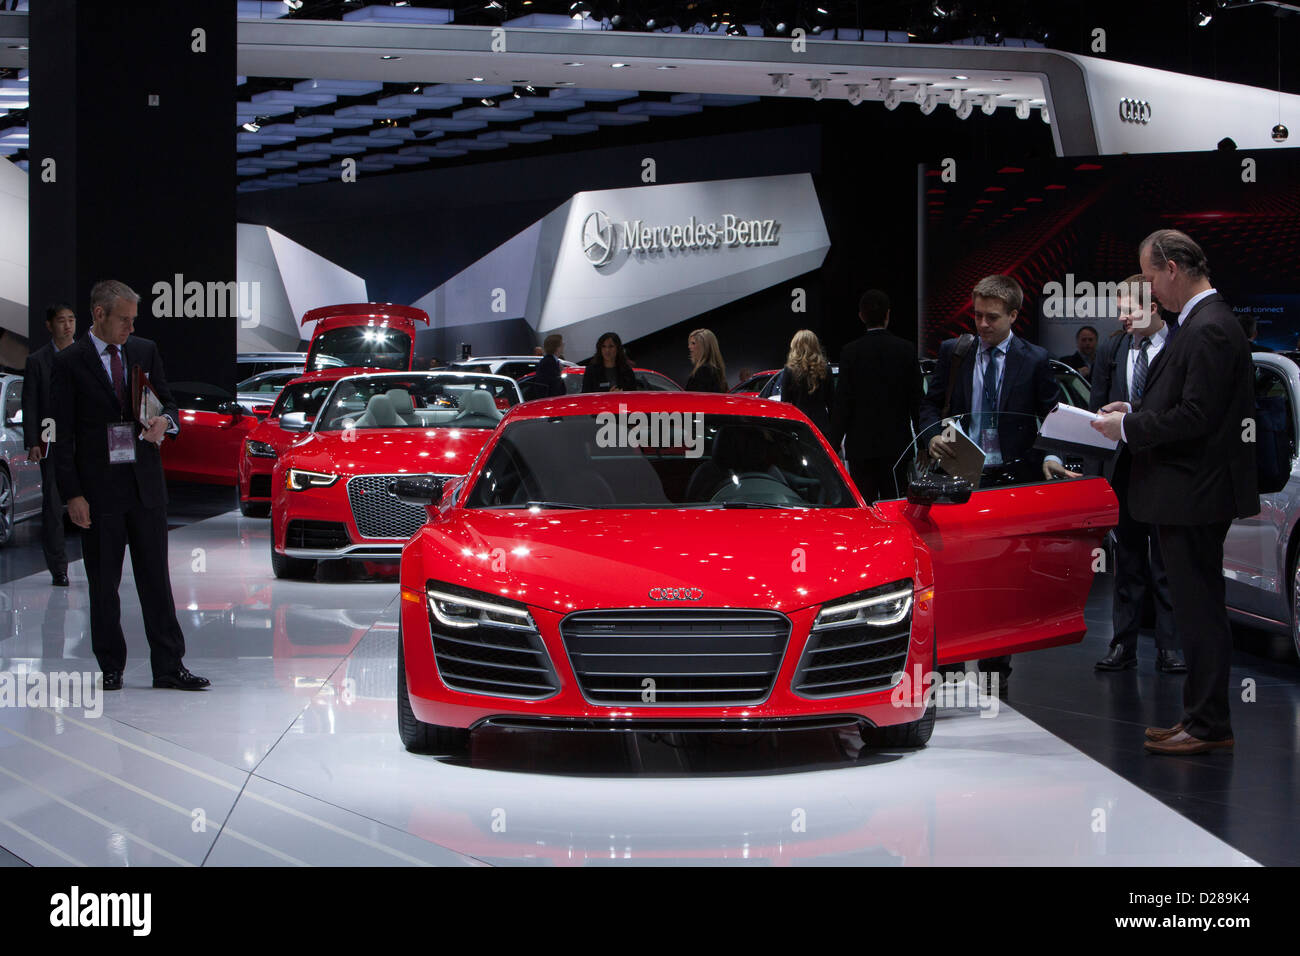 Detroit, Michigan - The Audi R8 on display at the North American International Auto Show. - Stock Image